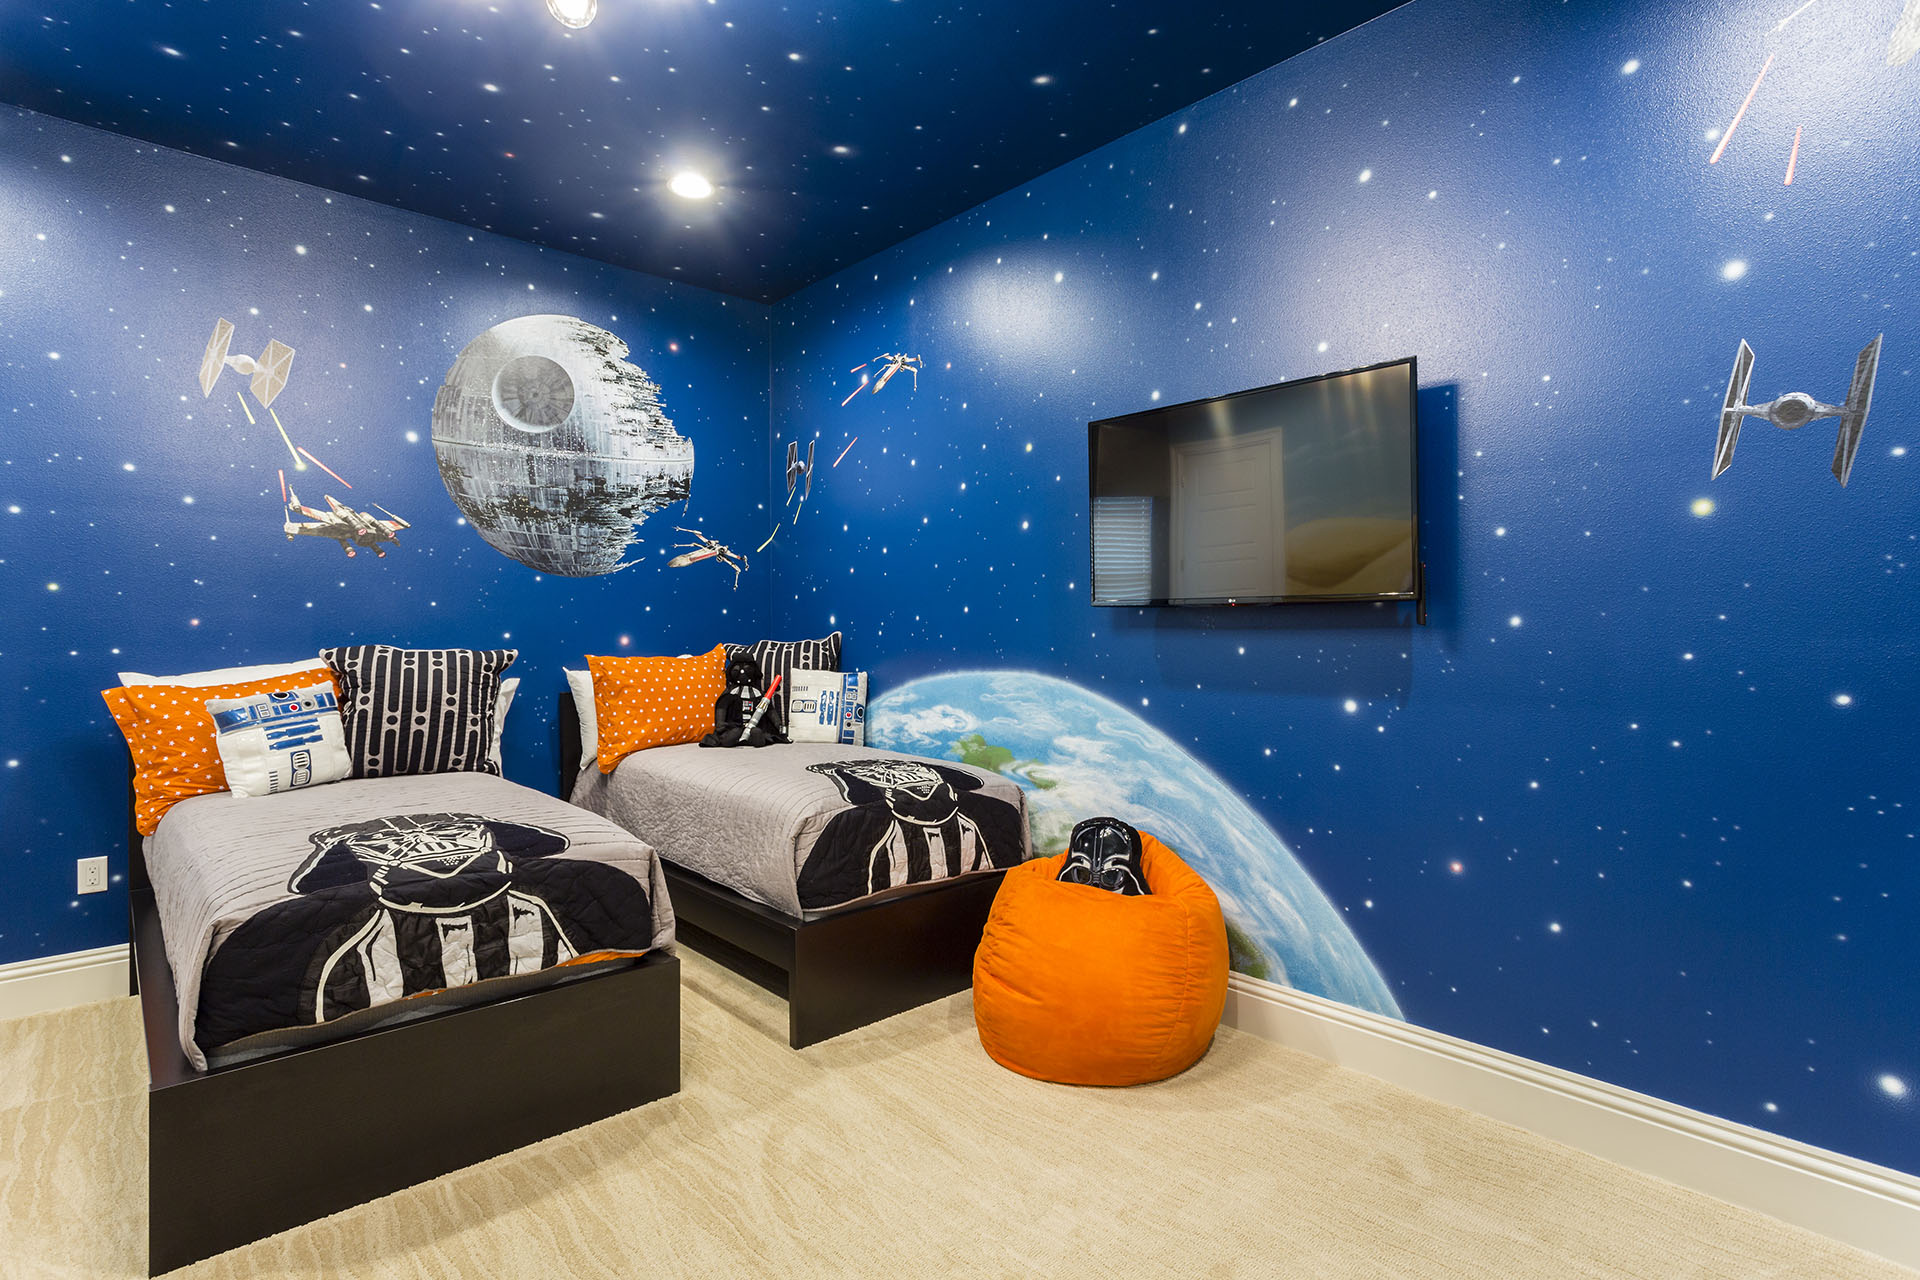 Star Wars Bedroom Ideas Themes Harry Lim 39s Photography Blog